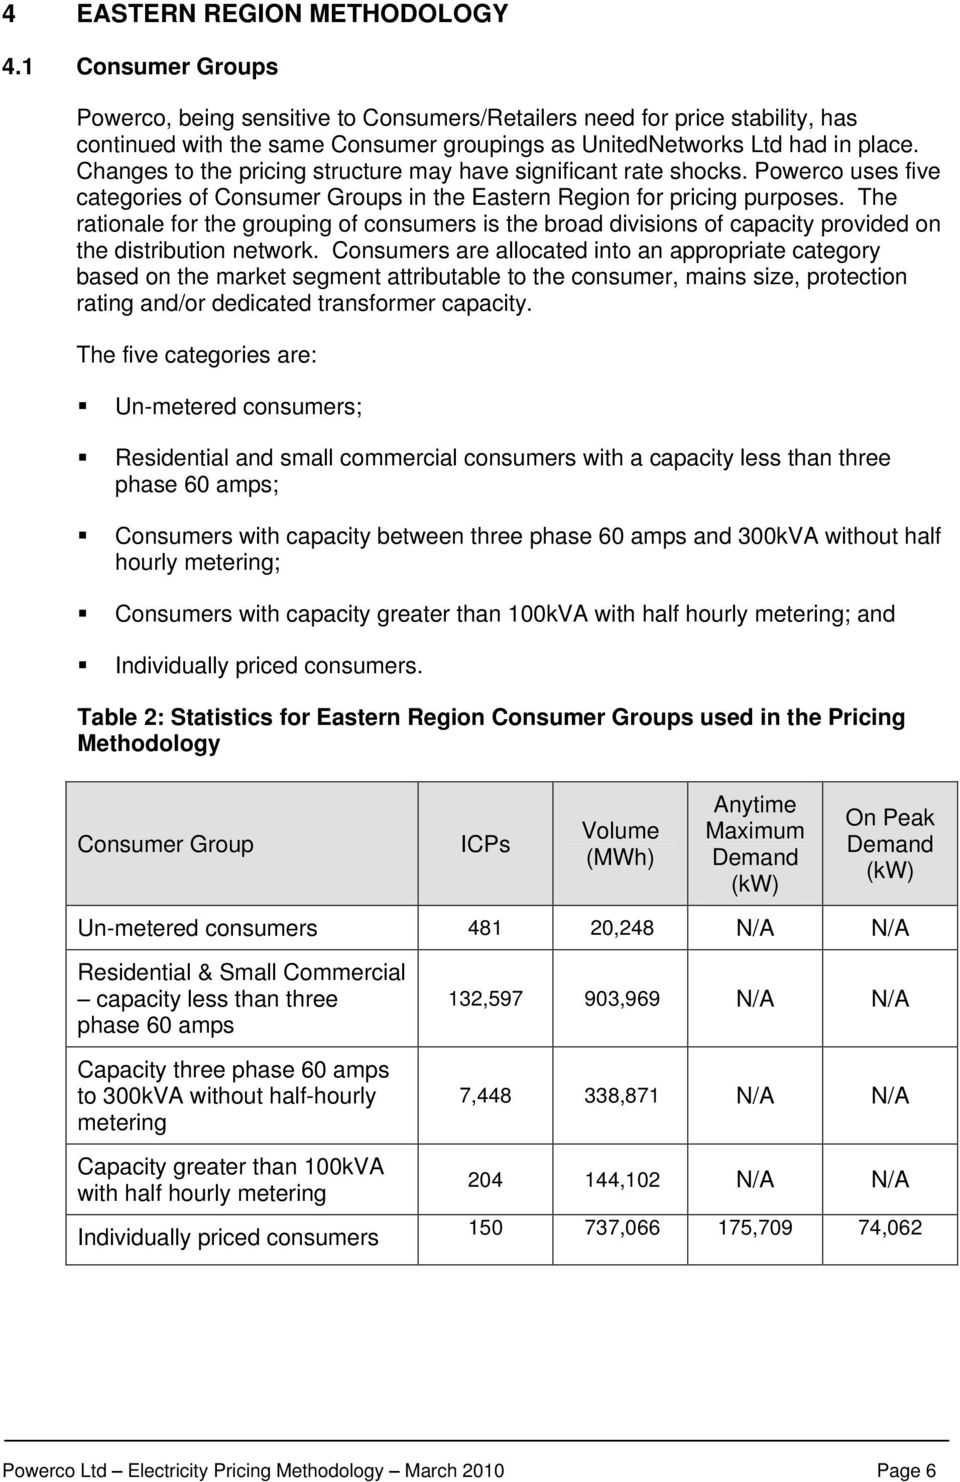 Changes to the pricing structure may have significant rate shocks. Powerco uses five categories of Consumer Groups in the Eastern Region for pricing purposes.